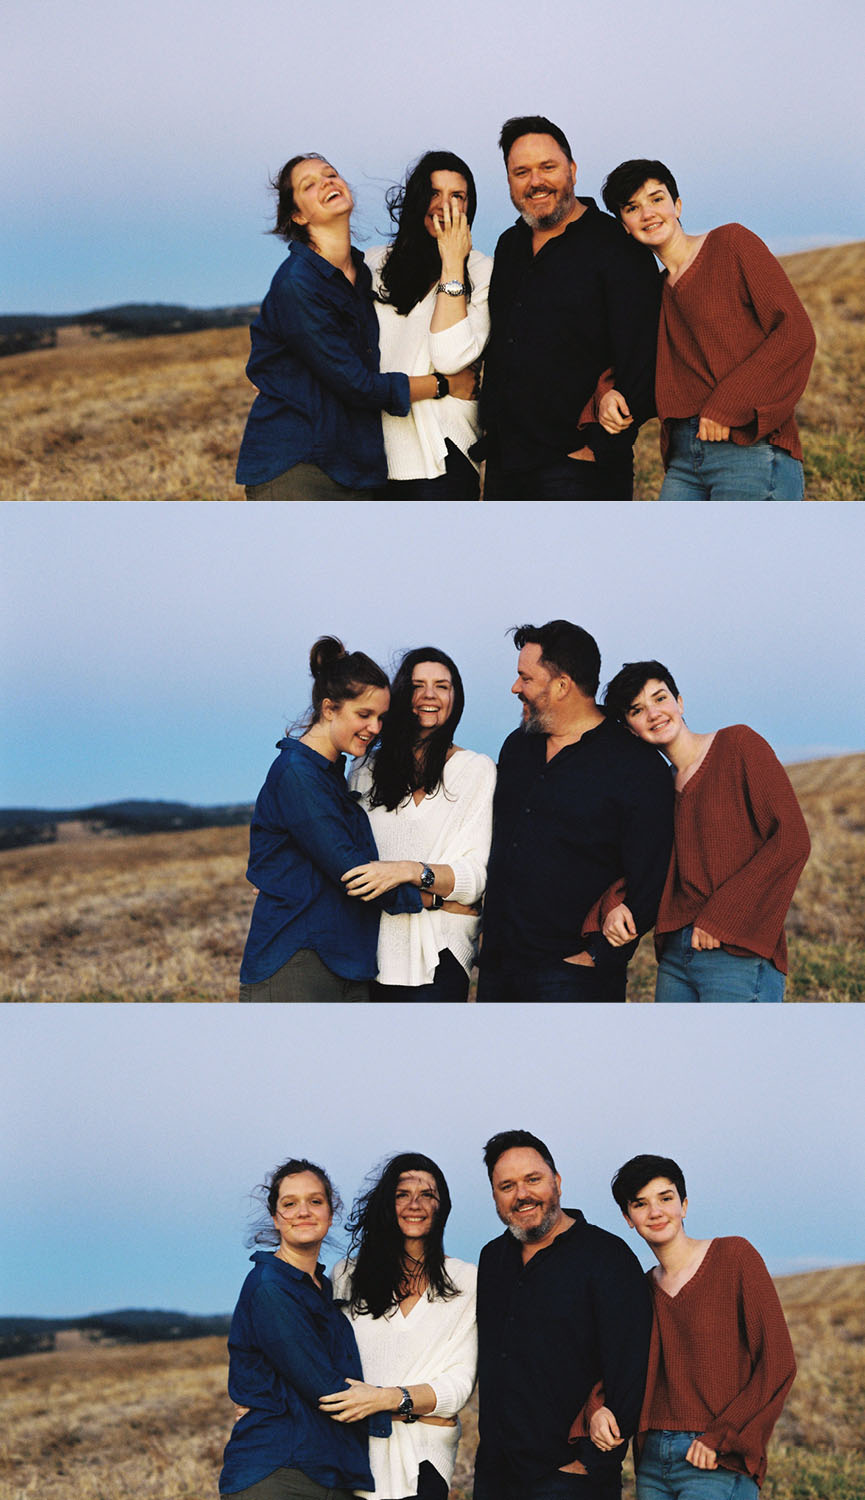 Third generation family, Kate and Paul and their daughters Elizabeth and Josephine Atkins. (Shot by Bentinmarcs on Kodak Portra 400 120 processed and scanned by us)